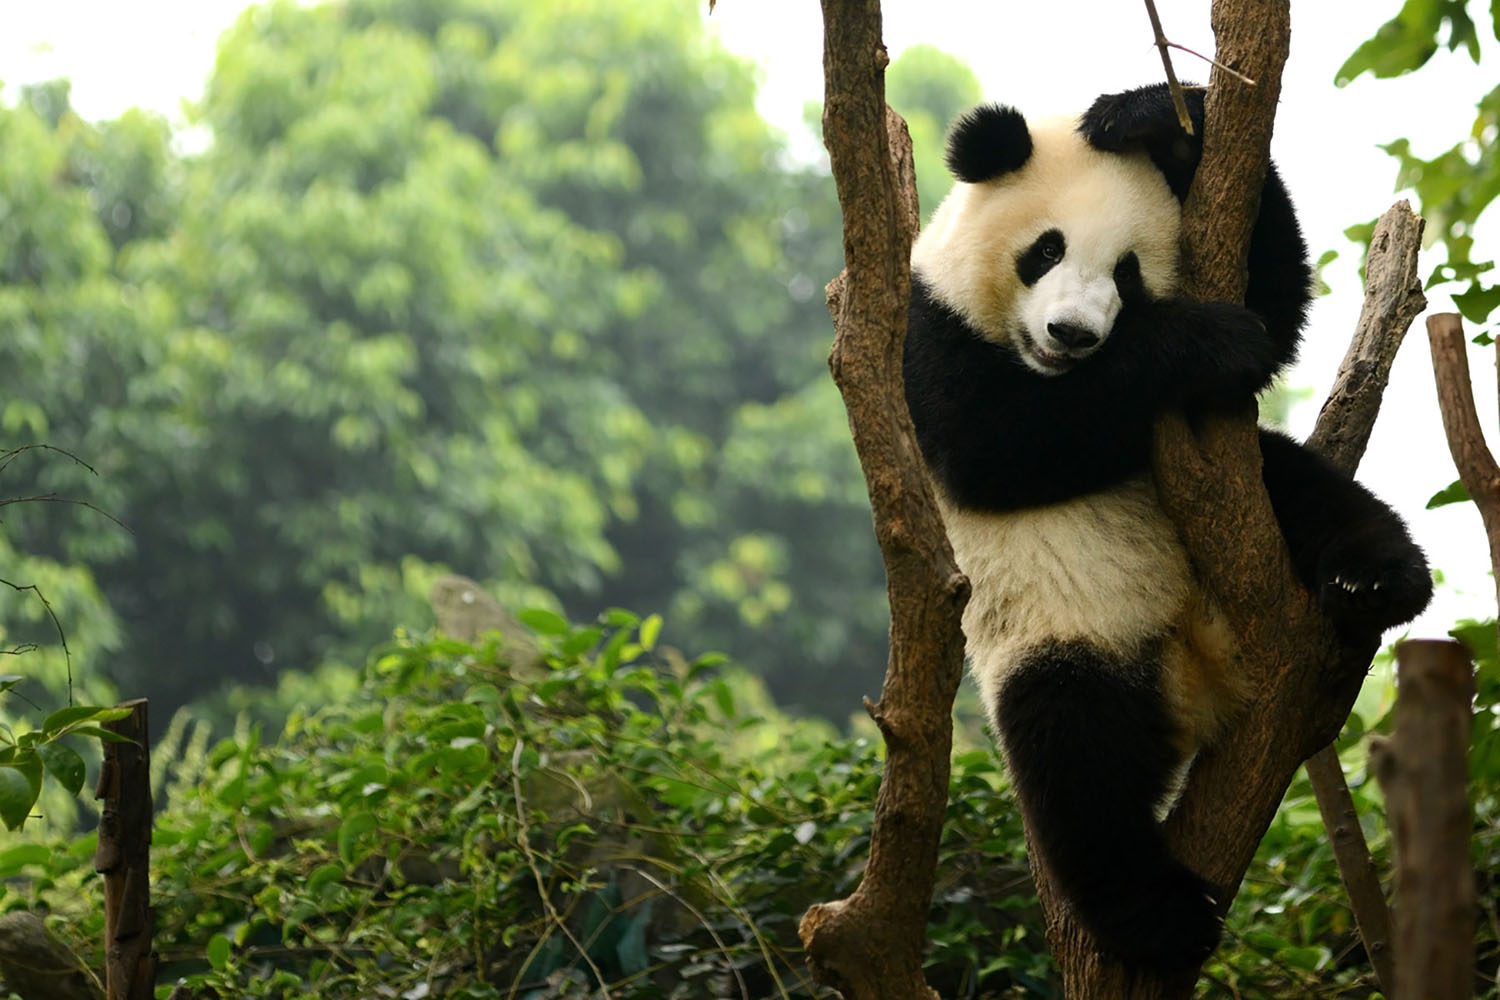 Giant panda bear playing on a tree in Chengdu, China